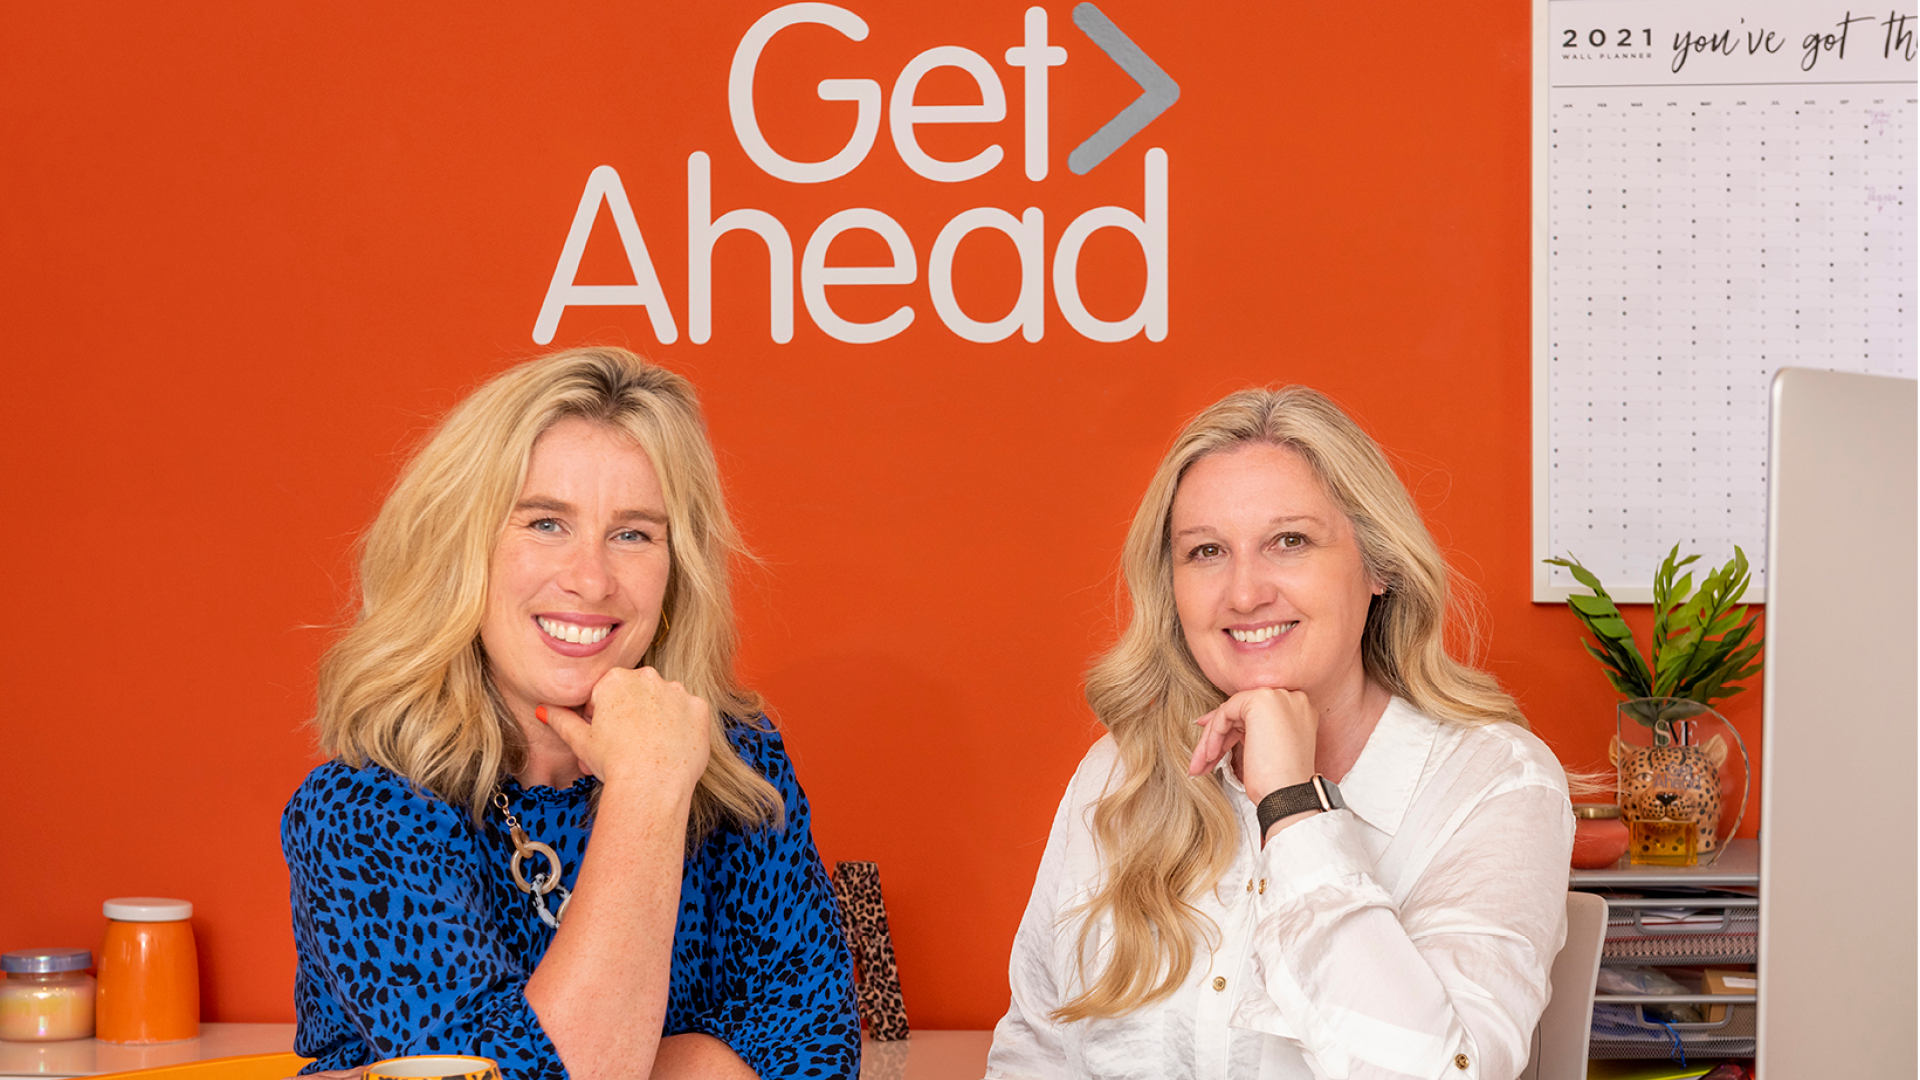 Get Ahead welcomes new franchisee for Oxfordshire & Buckinghamshire